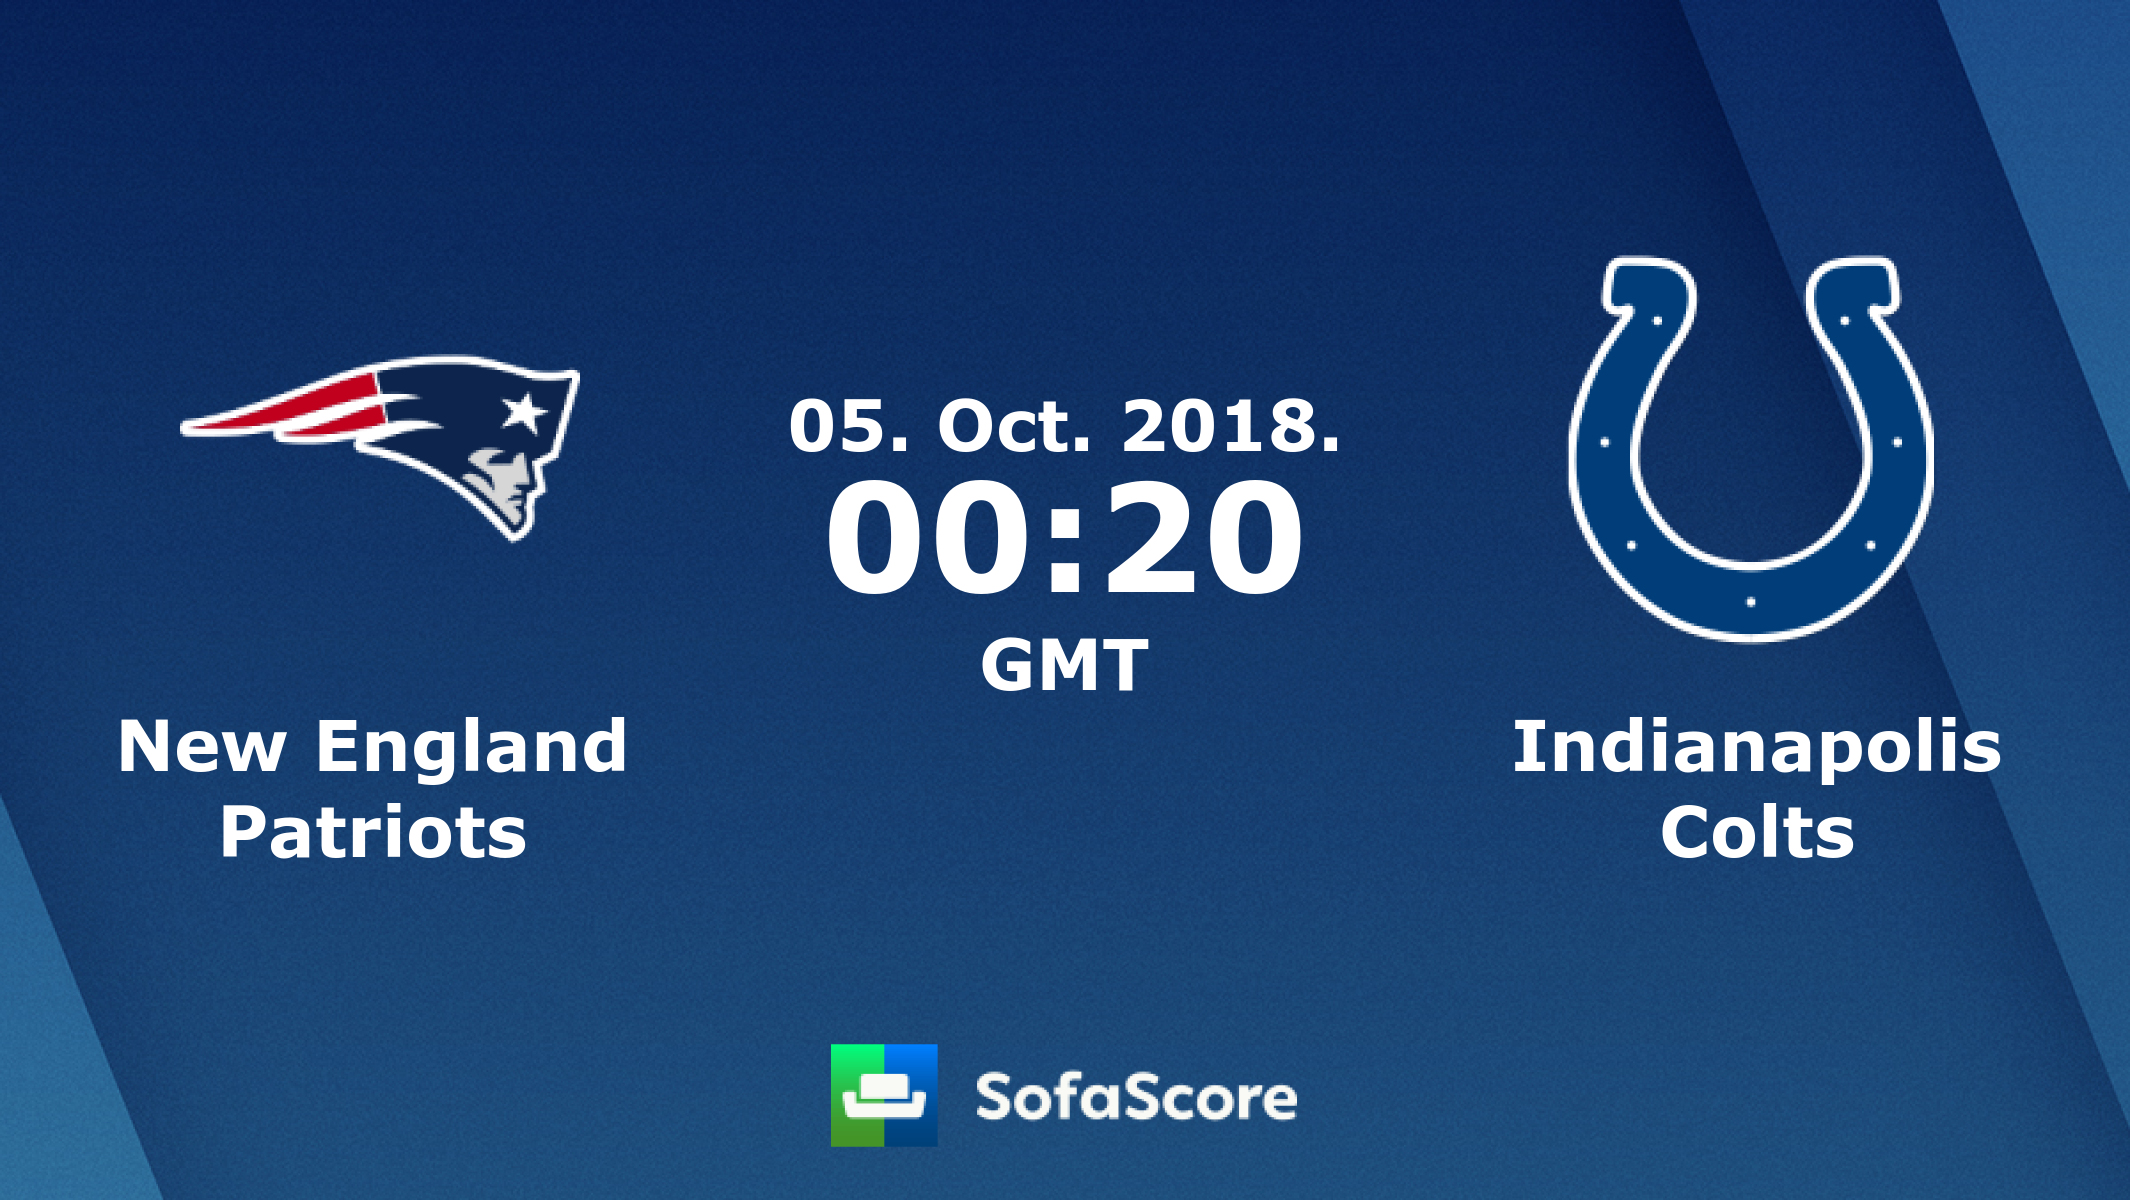 b073f688 New England Patriots Indianapolis Colts live score, video stream and ...